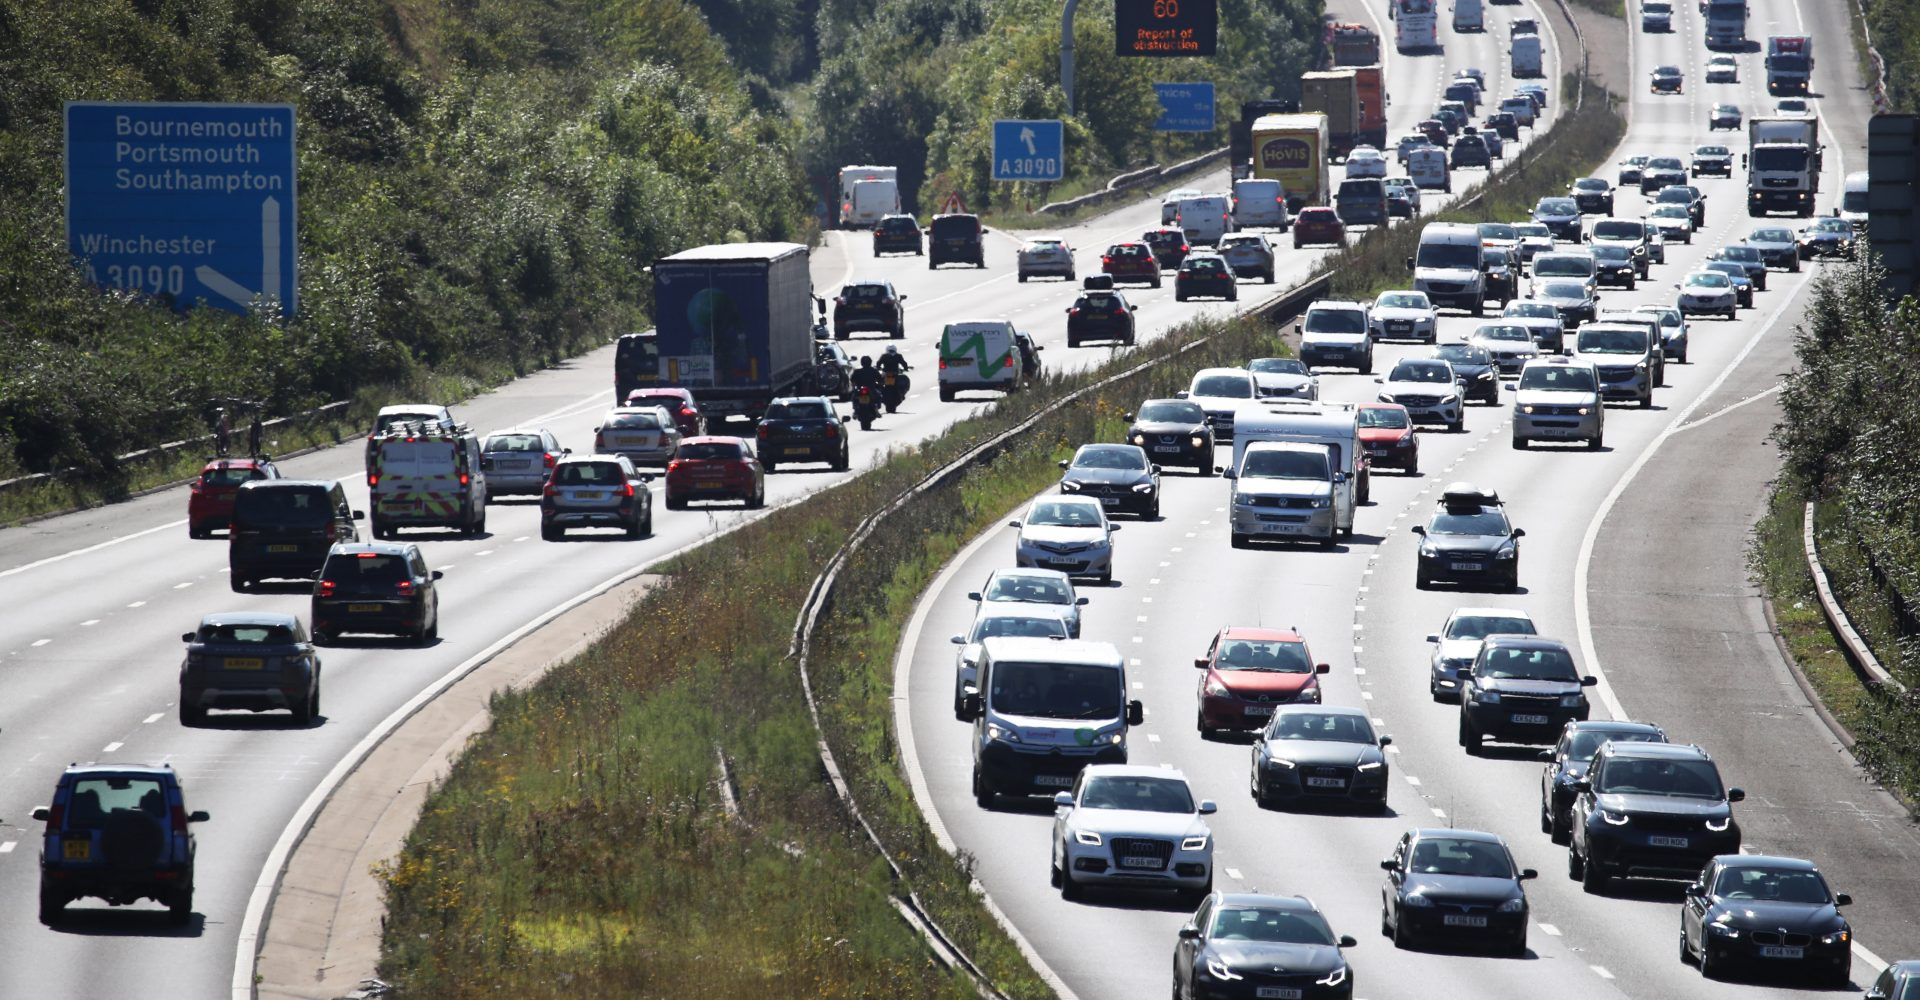 MPs to investigate road pricing